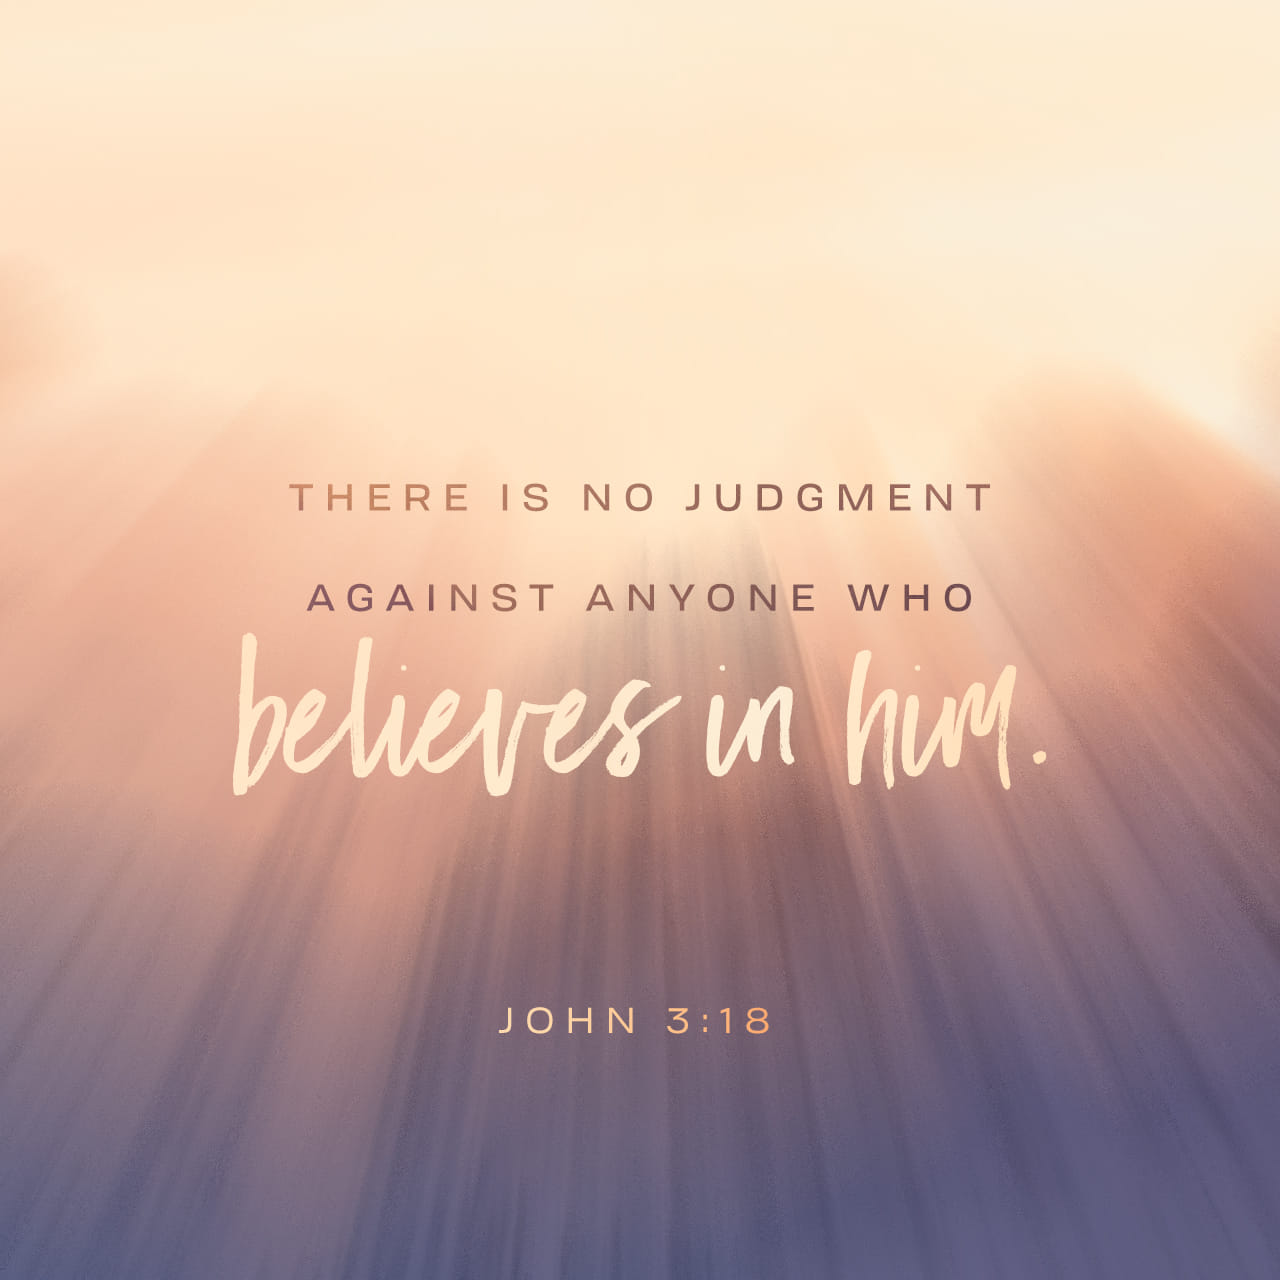 John 3:18 Whoever believes in him is not condemned, but whoever does not believe stands condemned already because they have not believed in the name of God's one and only Son. | New International Version (NIV)